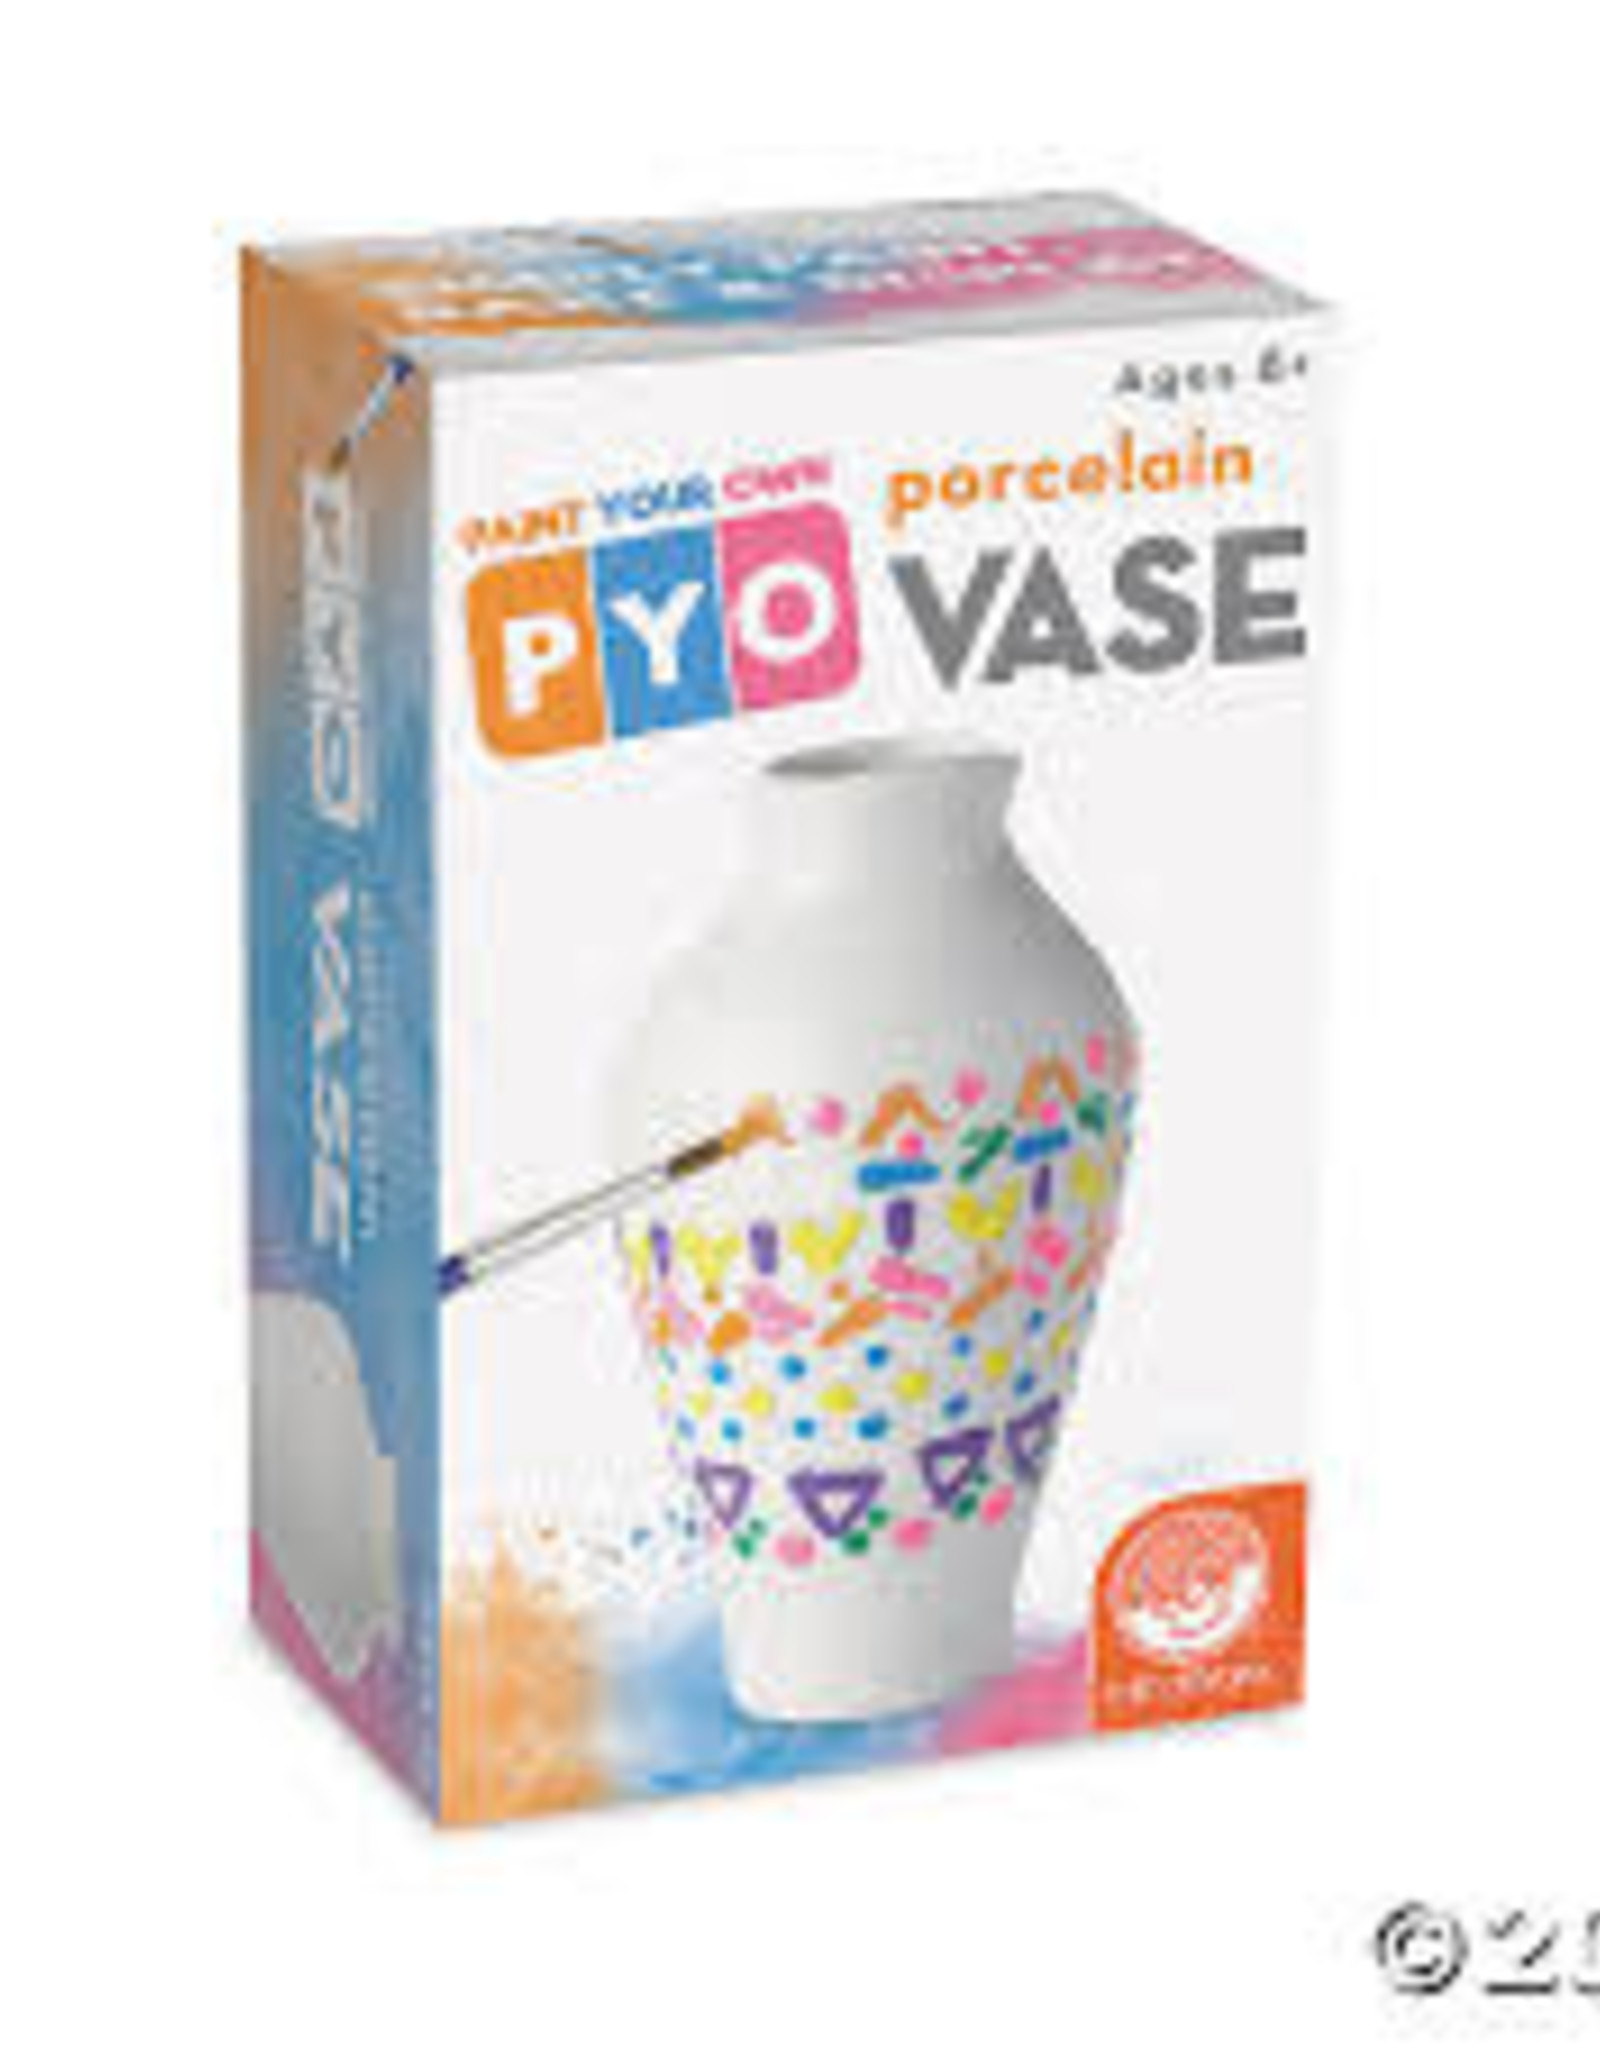 MindWare Paint-Your-Own Porcelain Vase